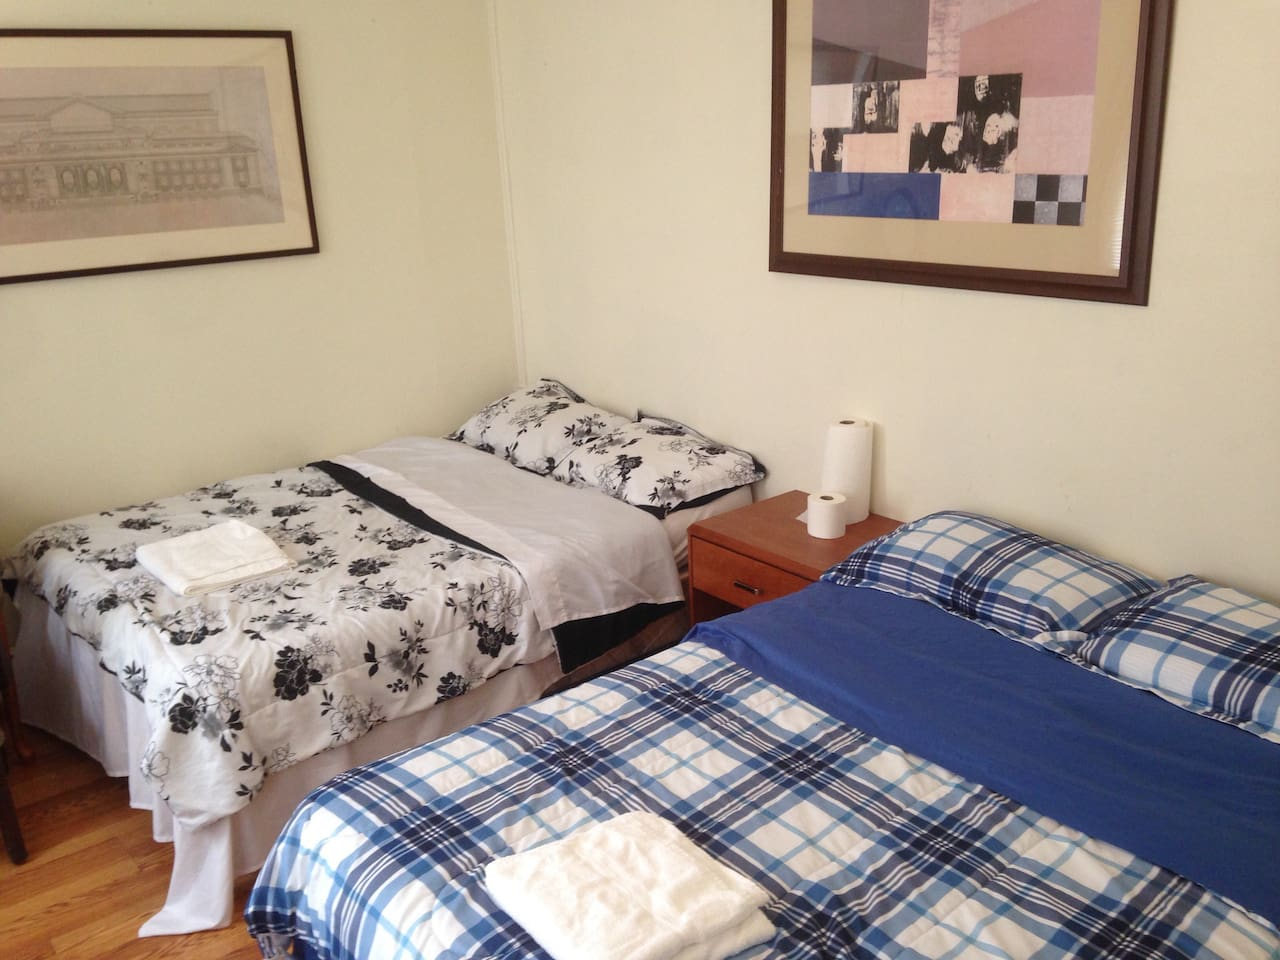 not actual photo similar,will update later-one to three beds possible let me know